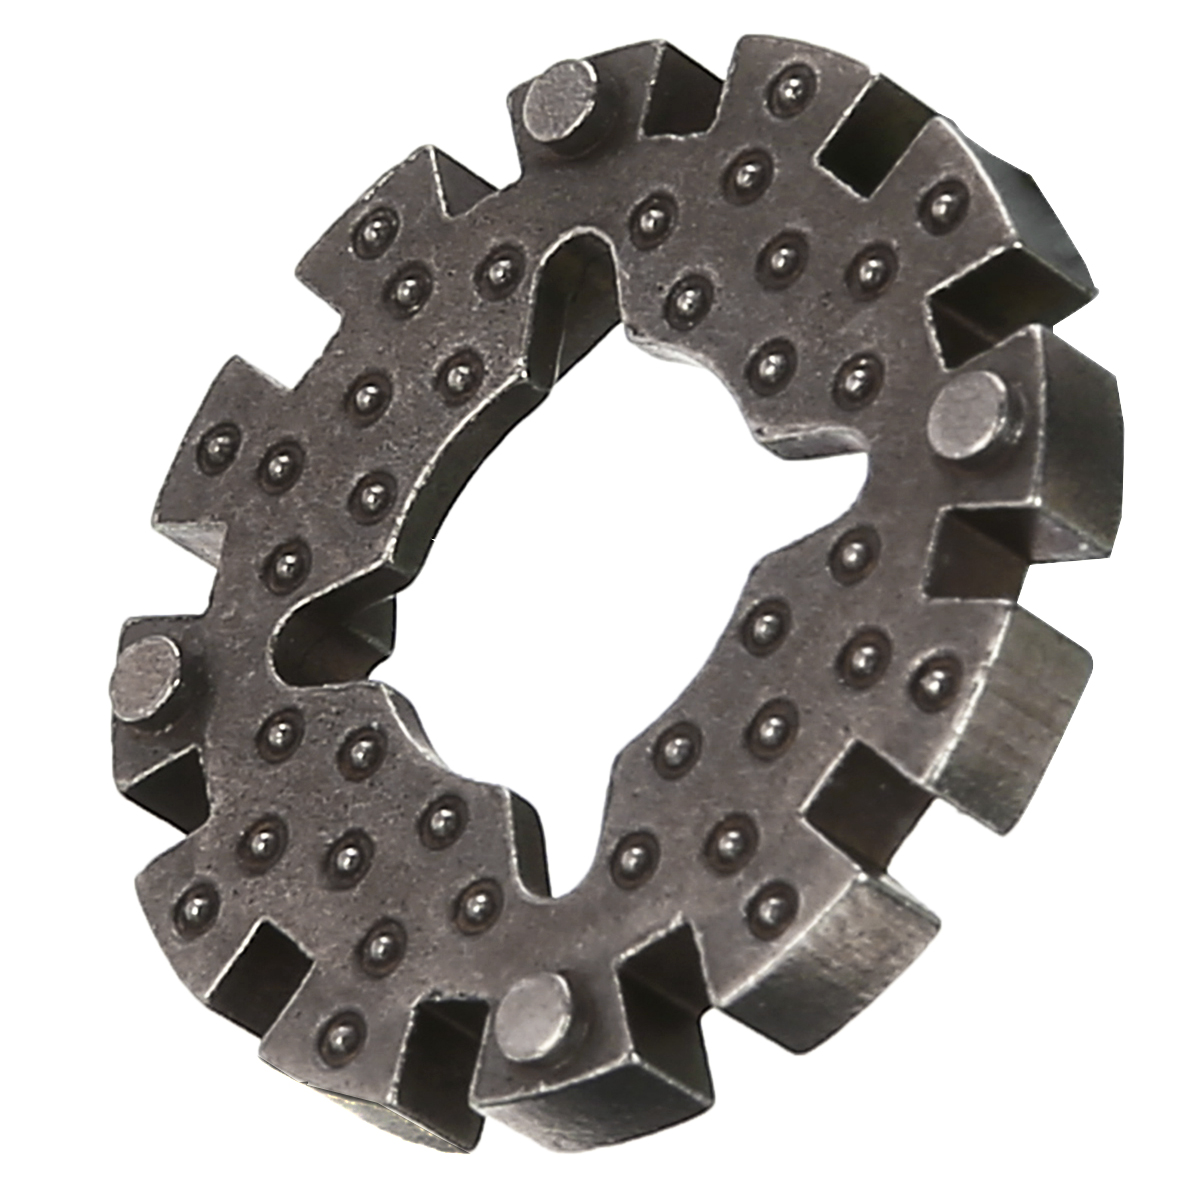 Woodworking Oscillating Saw Blade Adapter Universal Shank Oscillating Blade Adapter Gasket Power Tool Accessories Multi Function